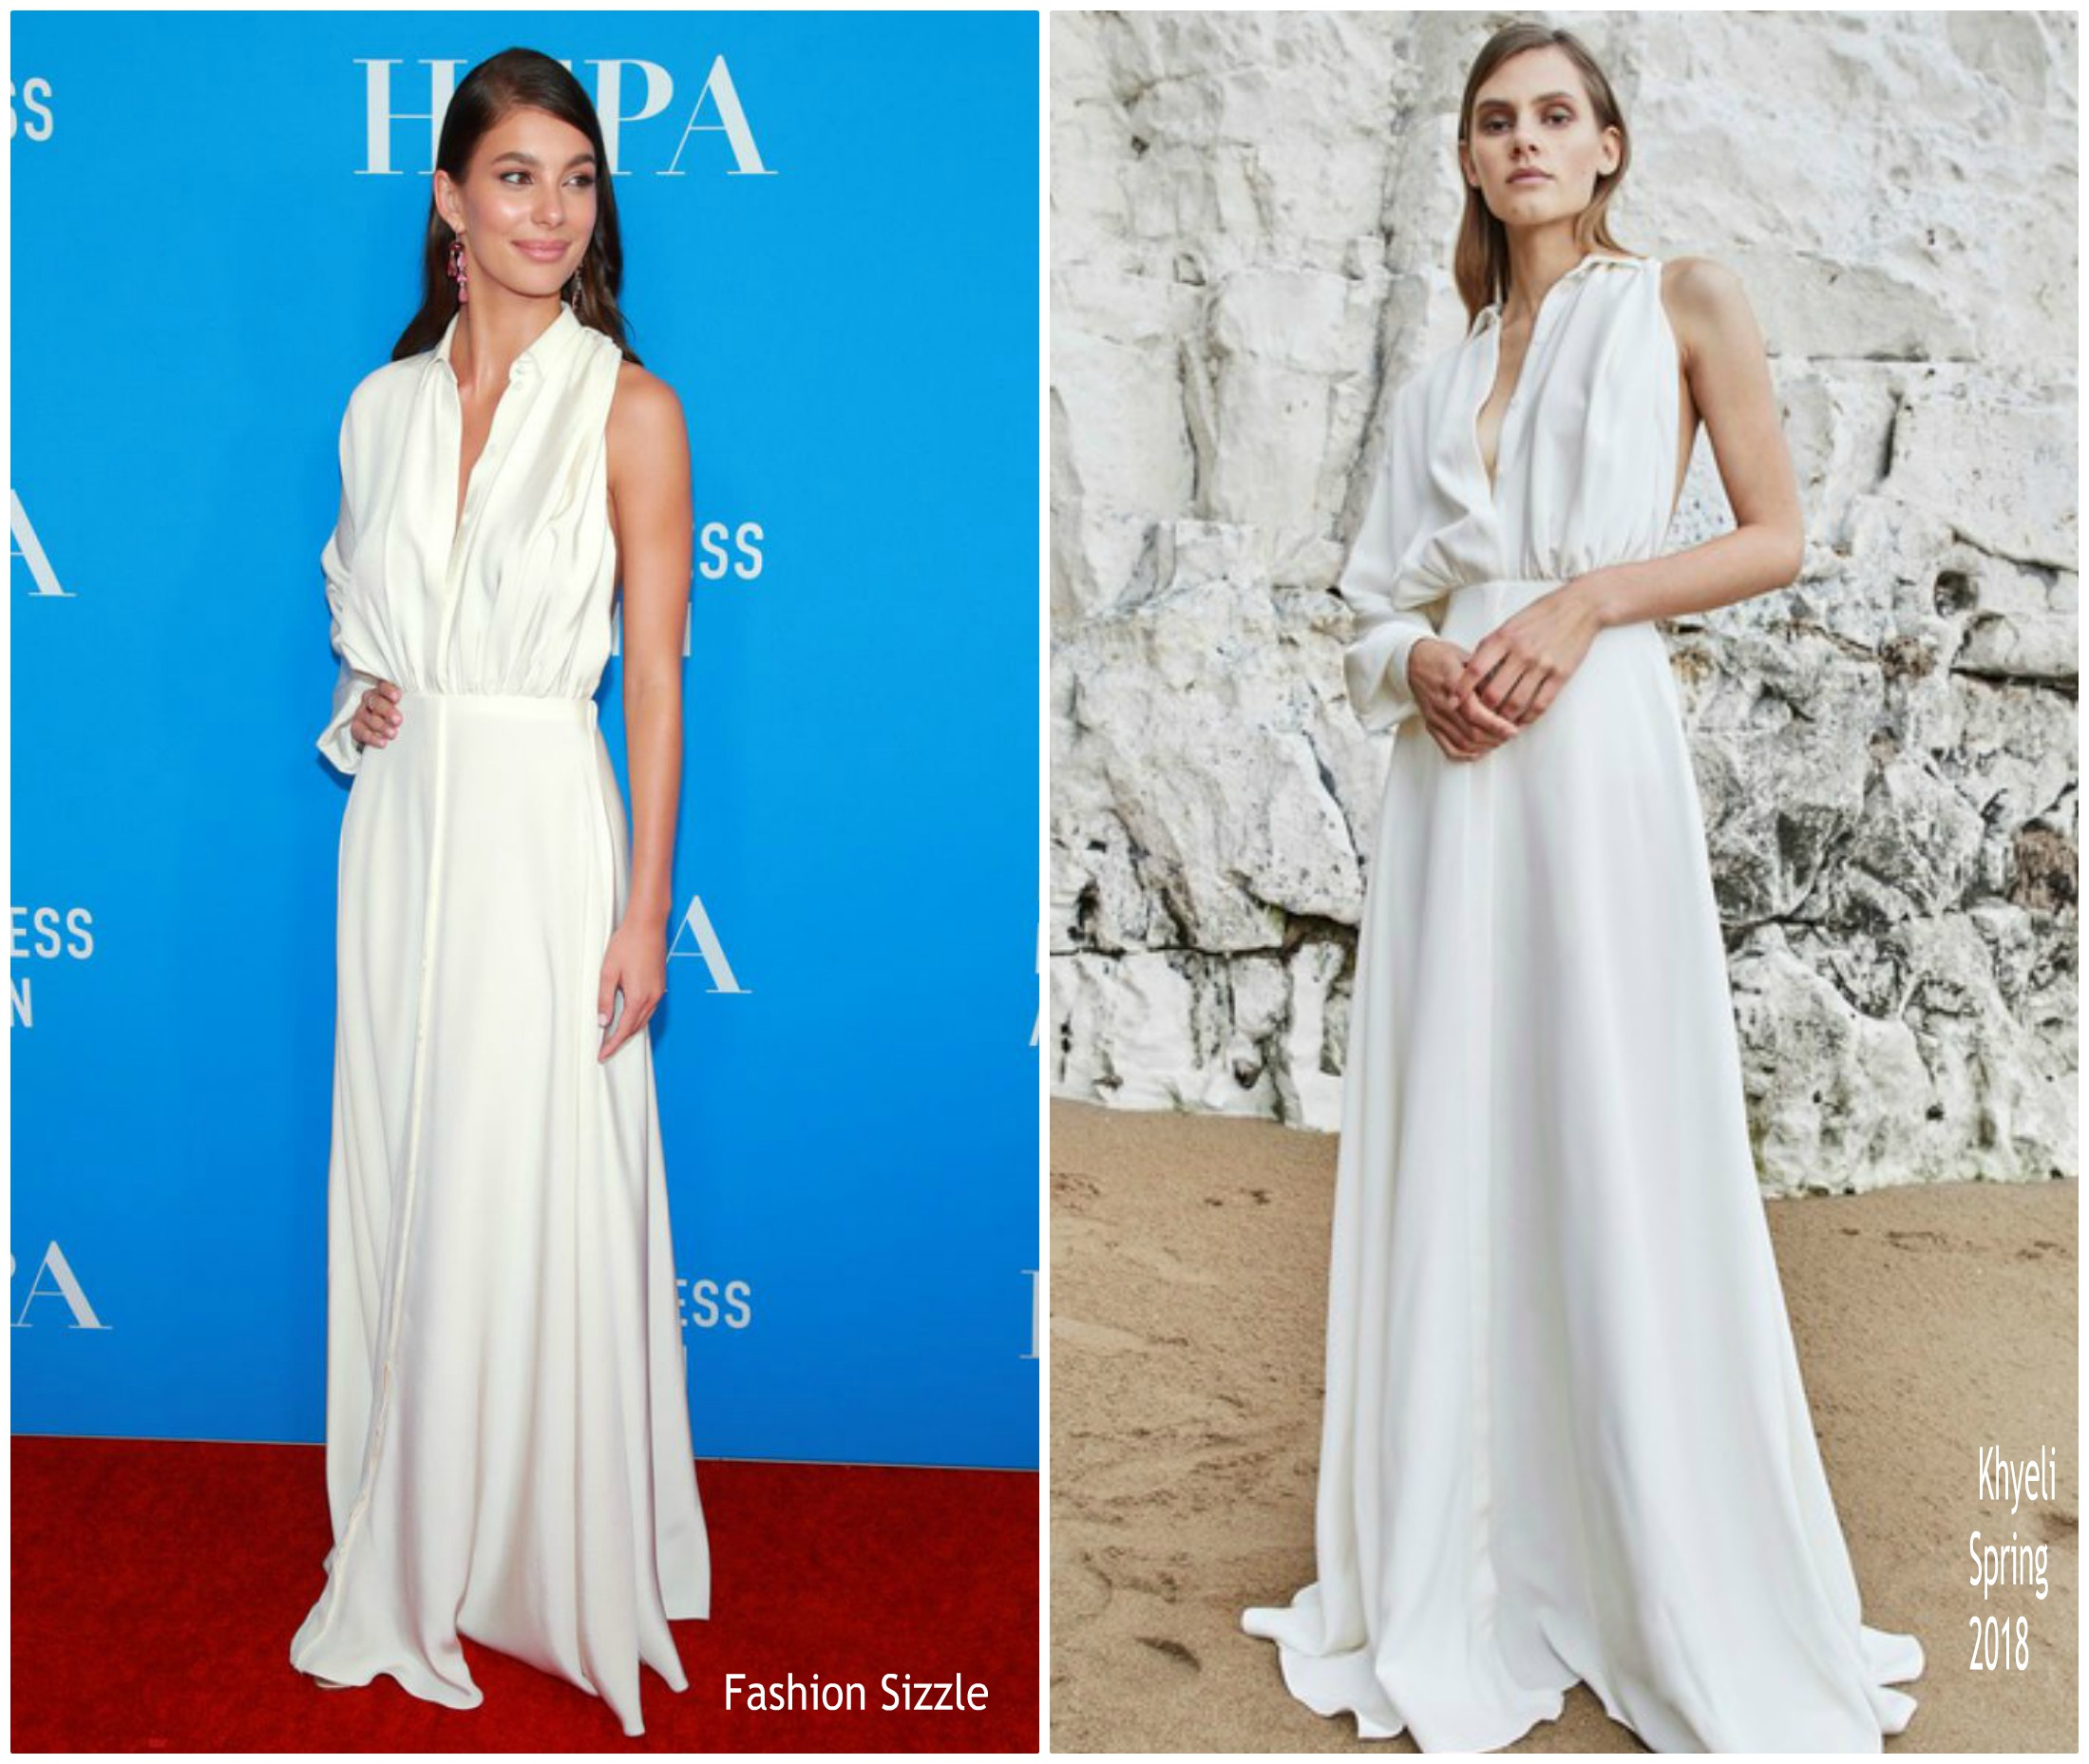 camila-morrone-in-khyeli-hollywood-foreign-press-associations-annual-grants-banquet